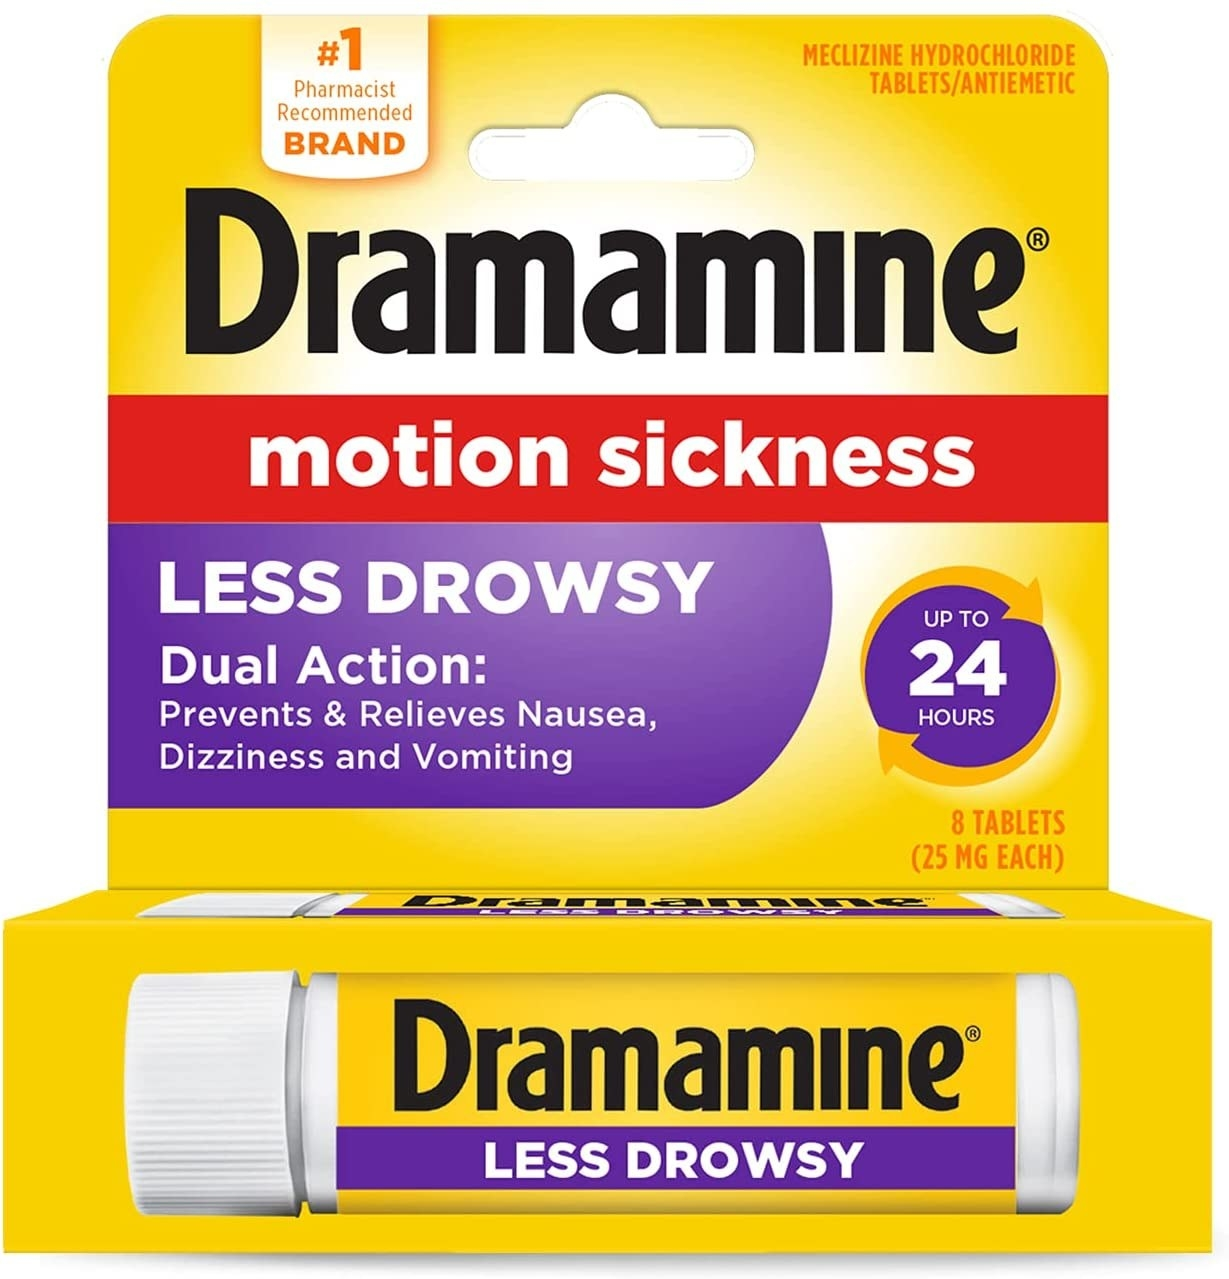 The dramamine package